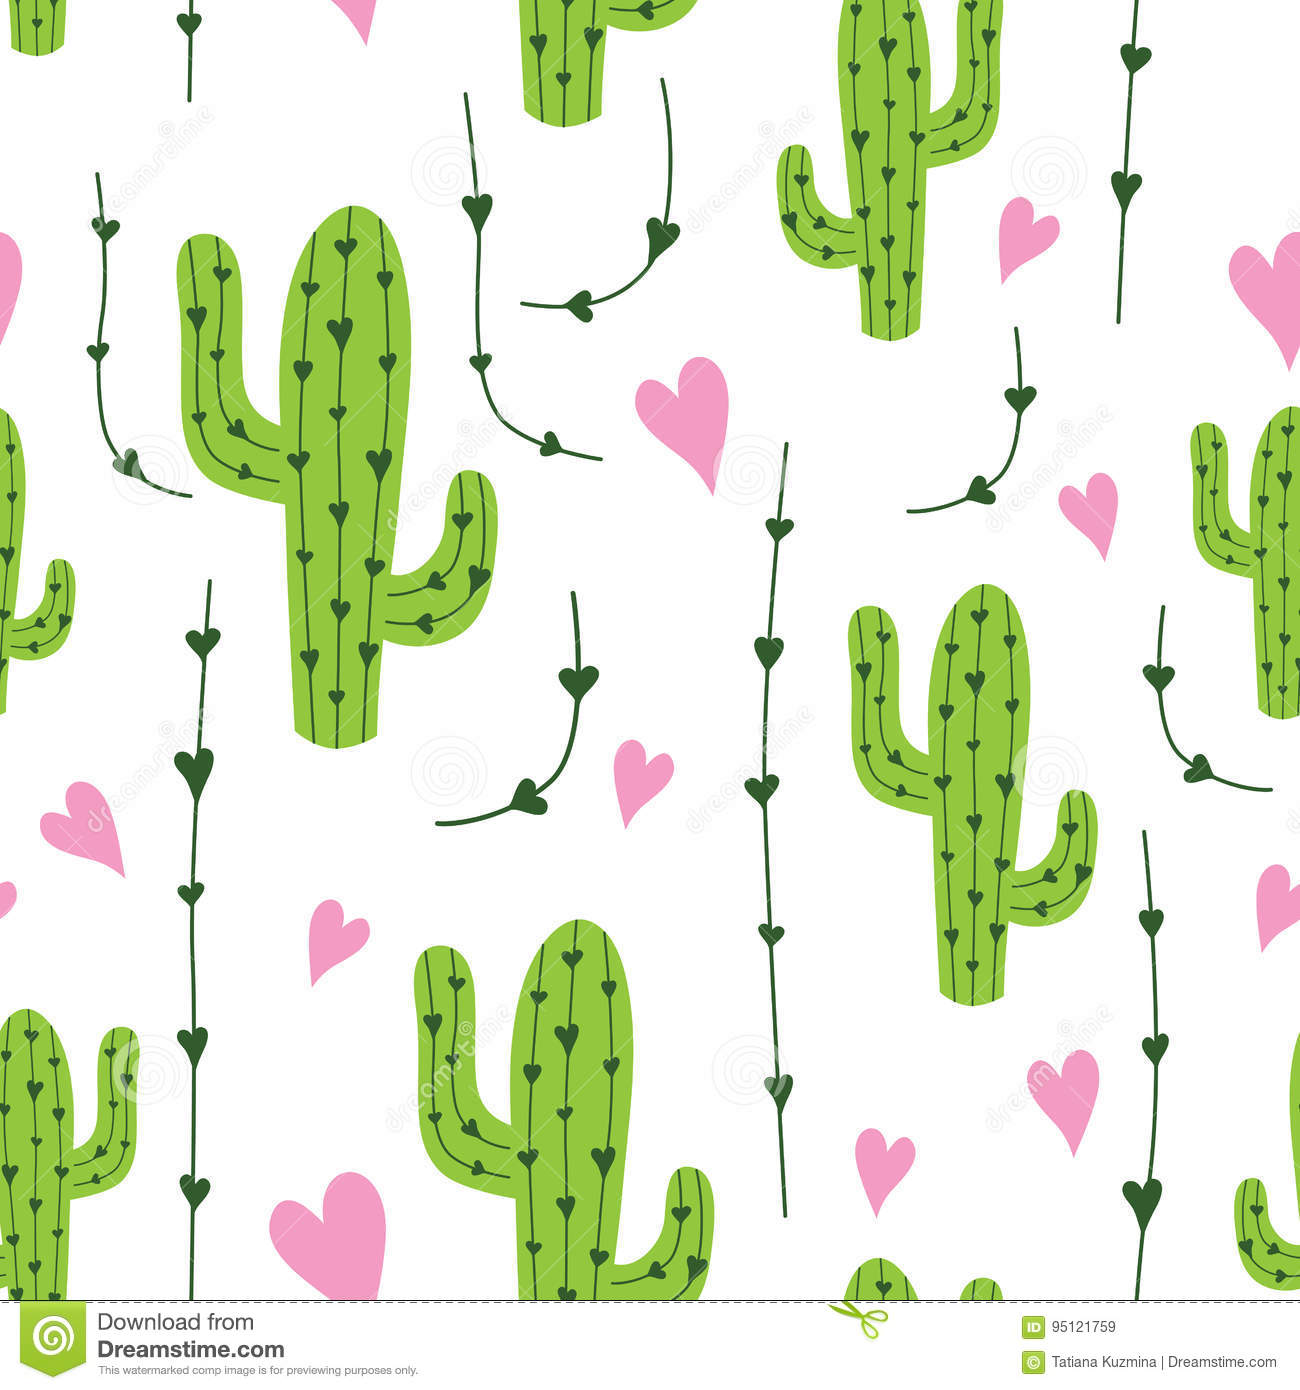 Cute cactus seamless pattern with hearts in green, pink and white colors. Natural vector background